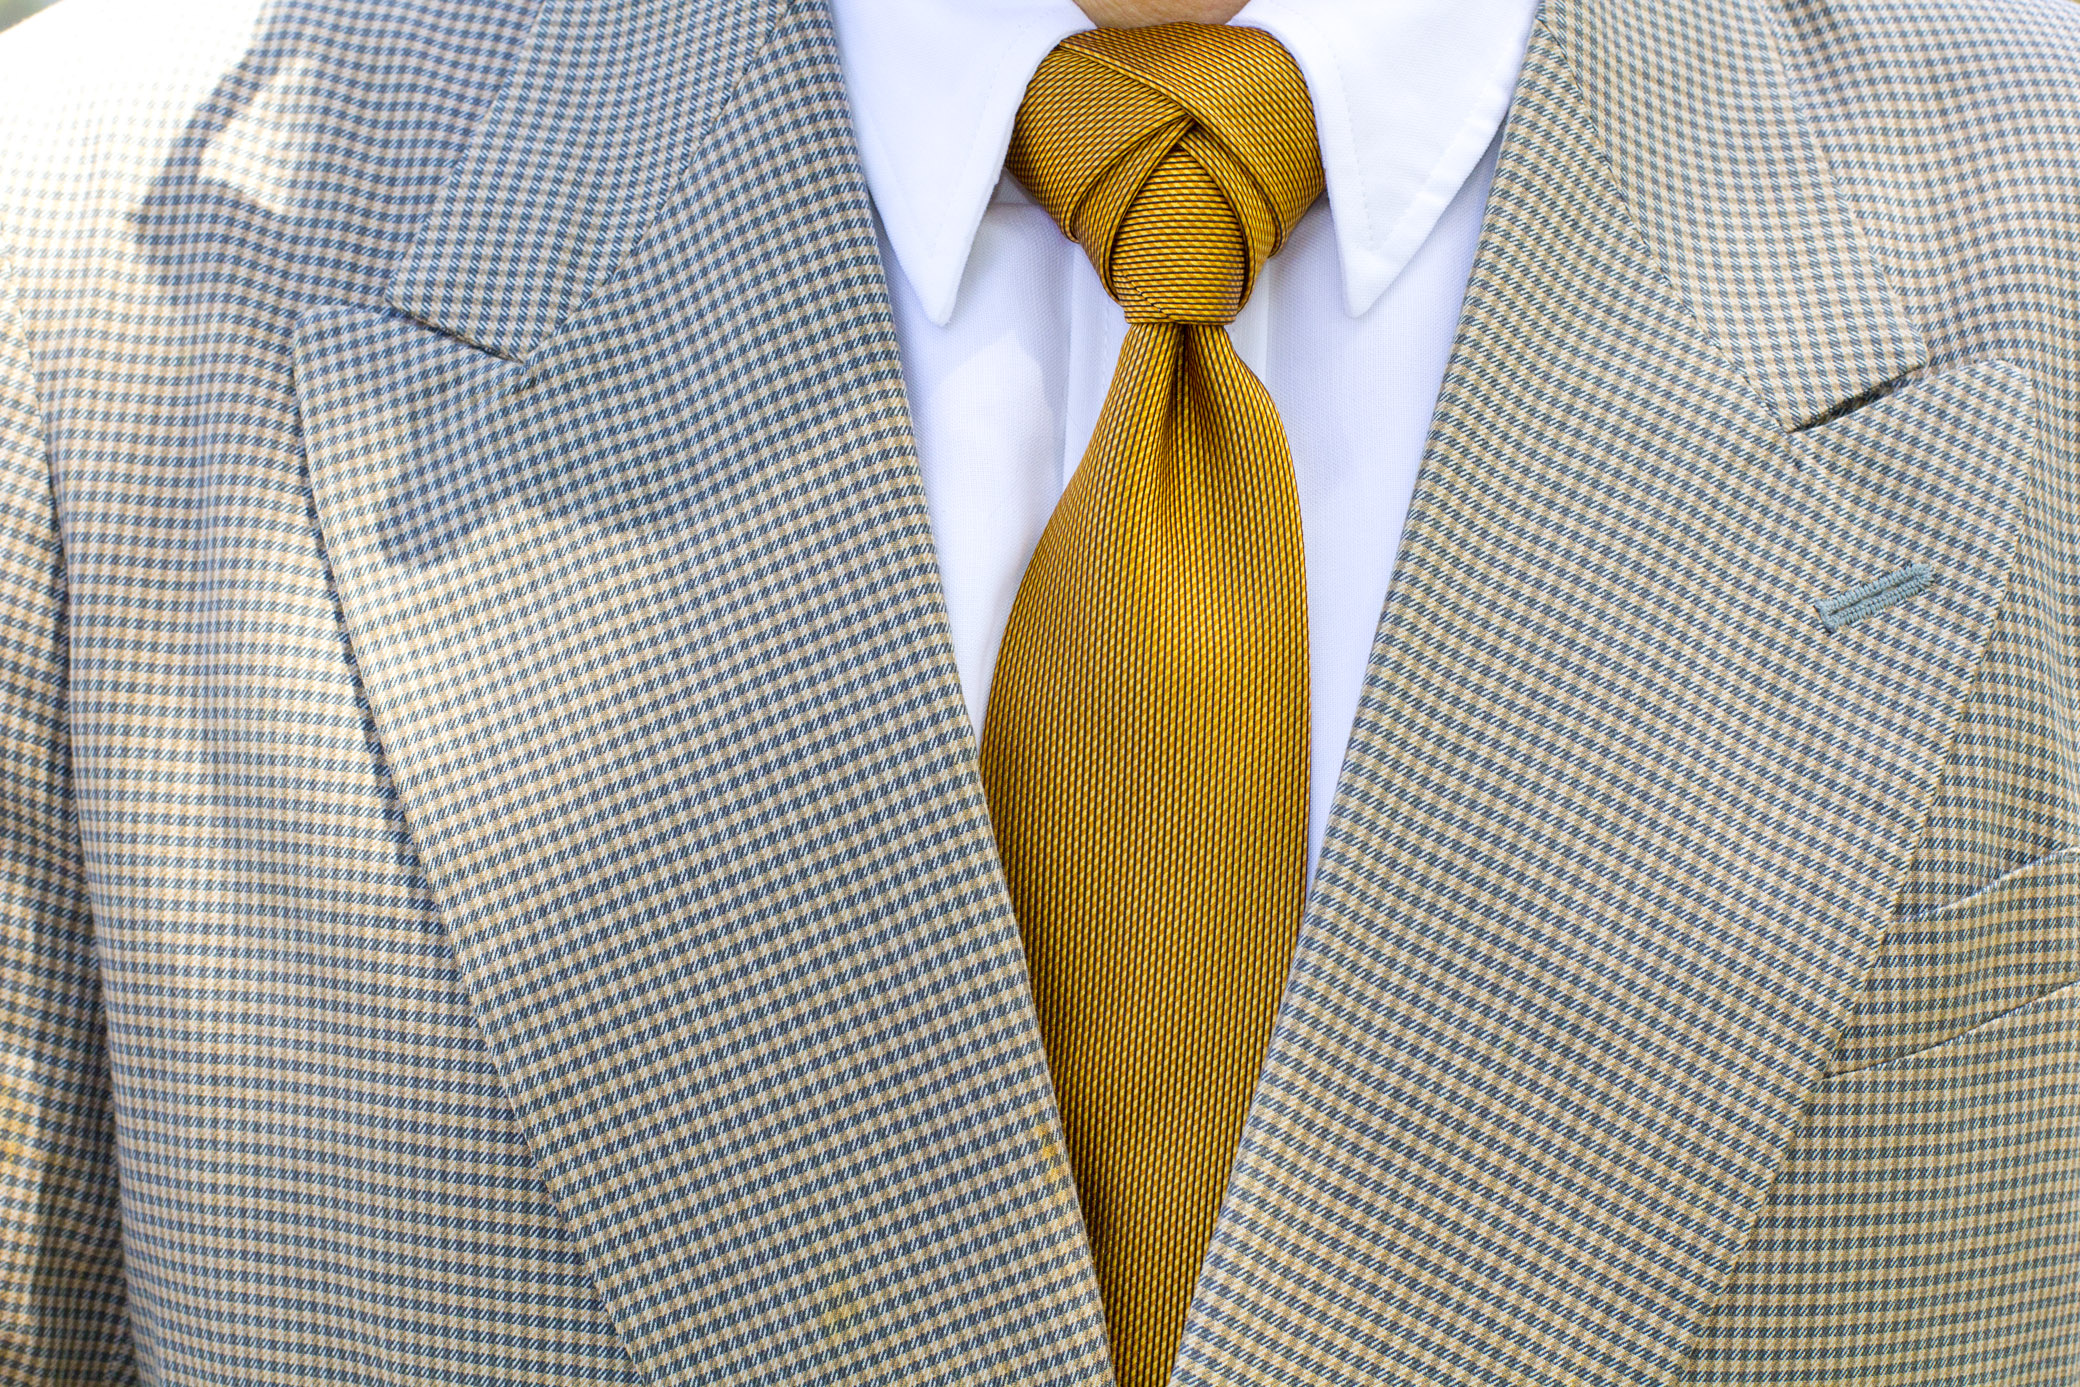 How to make an eldgredge tie knot douglas lagos now like many youd probably just put on a nicely pressed shirt a jacket and patching pants and maybe spice it up with a regular tie ccuart Choice Image